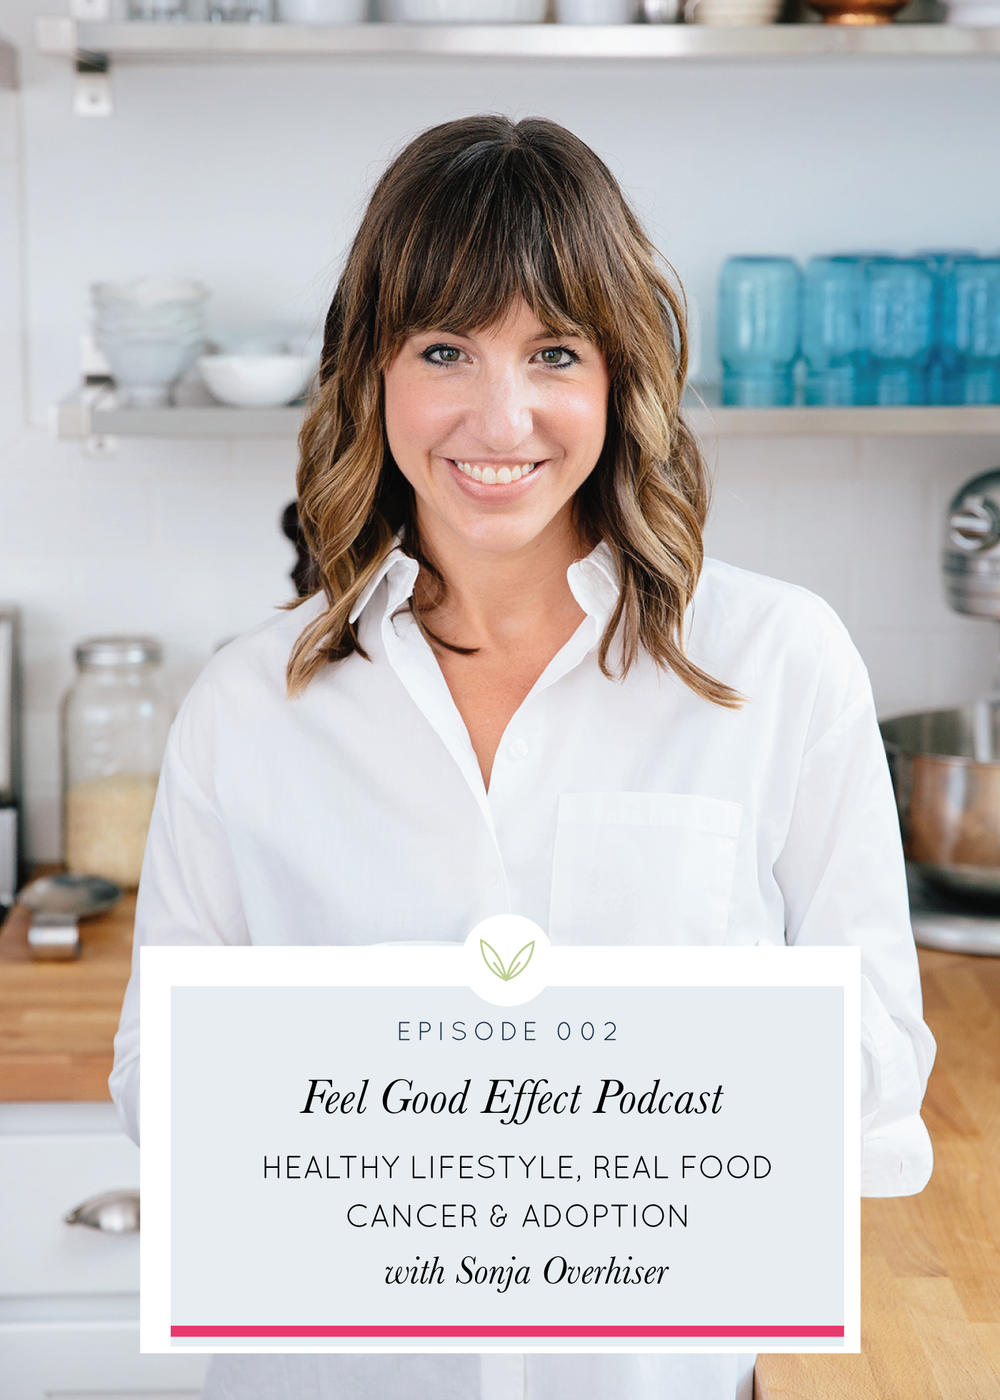 FEEL GOOD EFFECT EPISODE 002: HEALTHY LIFESTYLE, REAL FOOD, CANCER AND ADOPTION WITH SONJA OVERHISER FROM A COUPLE COOKS